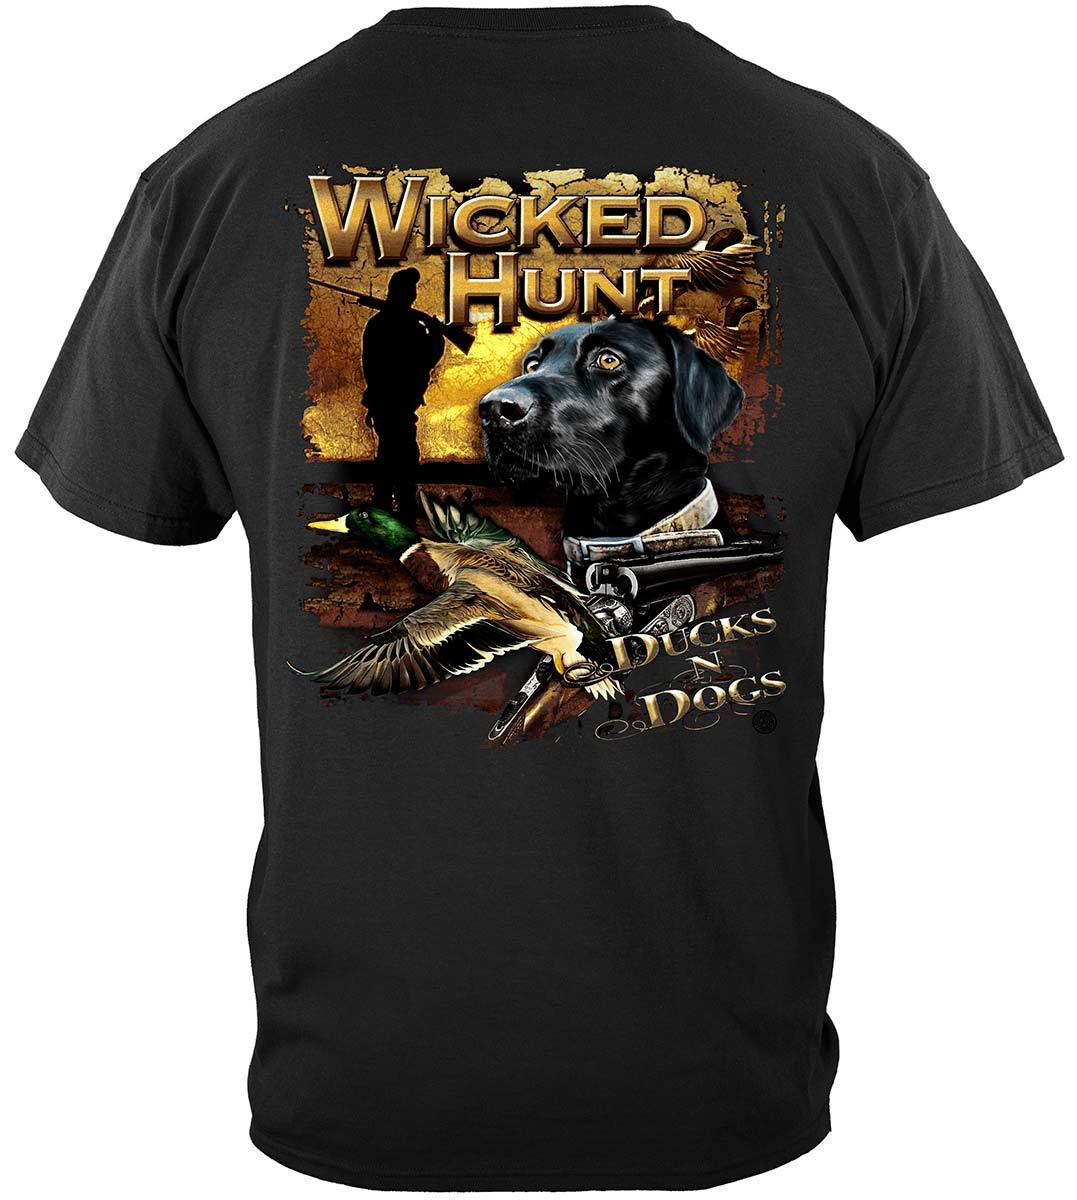 Wicked Hunt Ducks And Dogs Premium T-Shirt